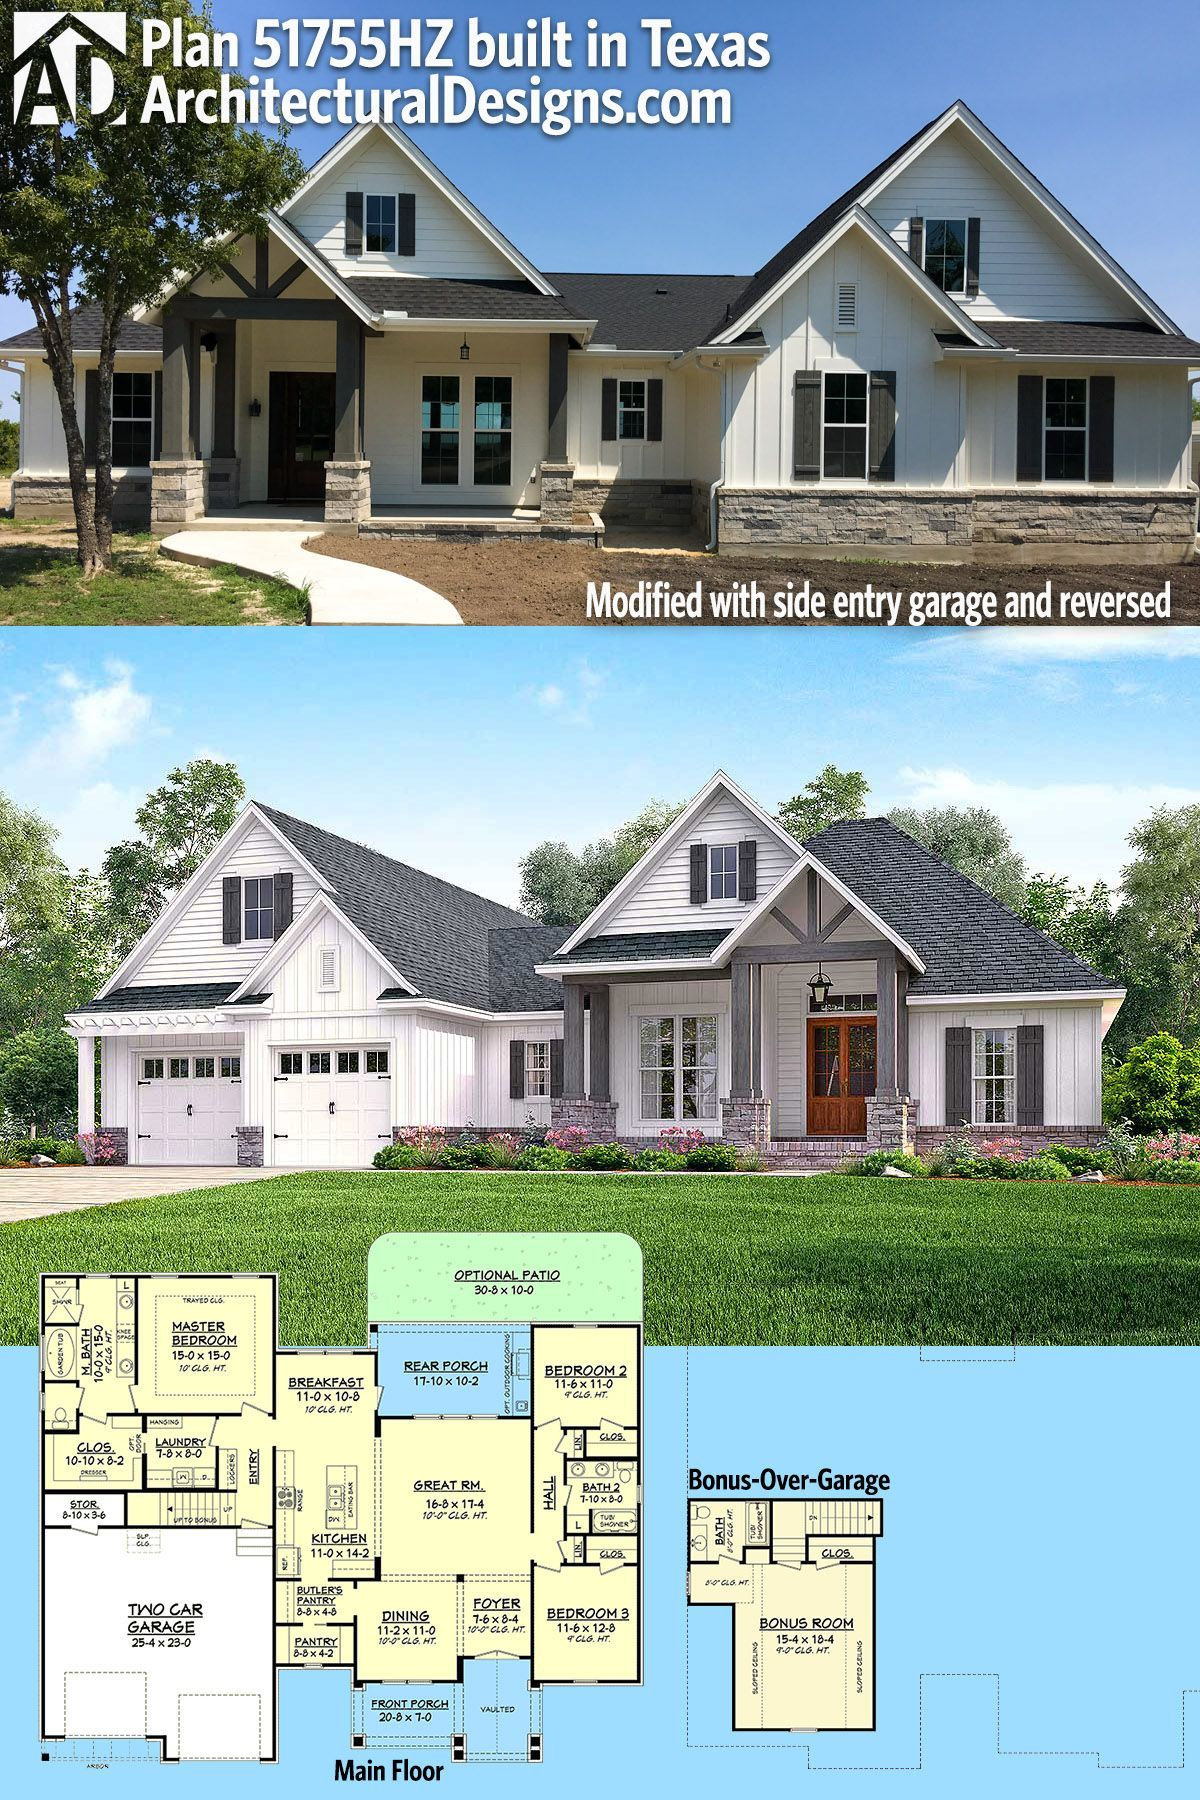 Architectural Designs Contemporary Craftsman With Bonus Over Garage Plan 51755hz Comes T Architectural Design House Plans Craftsman House Plans New House Plans